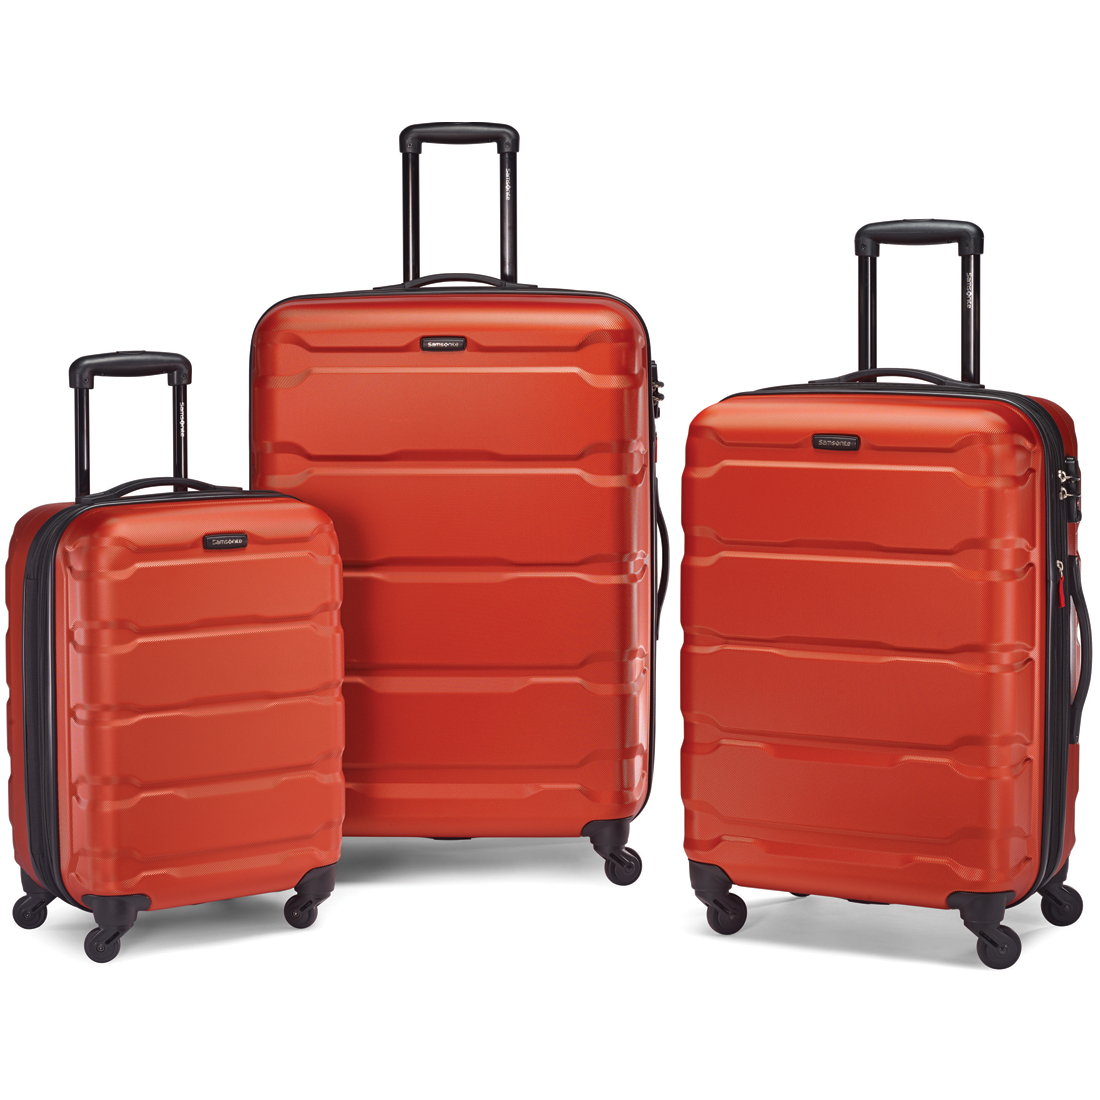 Samsonite-Omni-24-Inch-Hardside-Spinner-Luggage-Suitcase-Choose-Color thumbnail 24